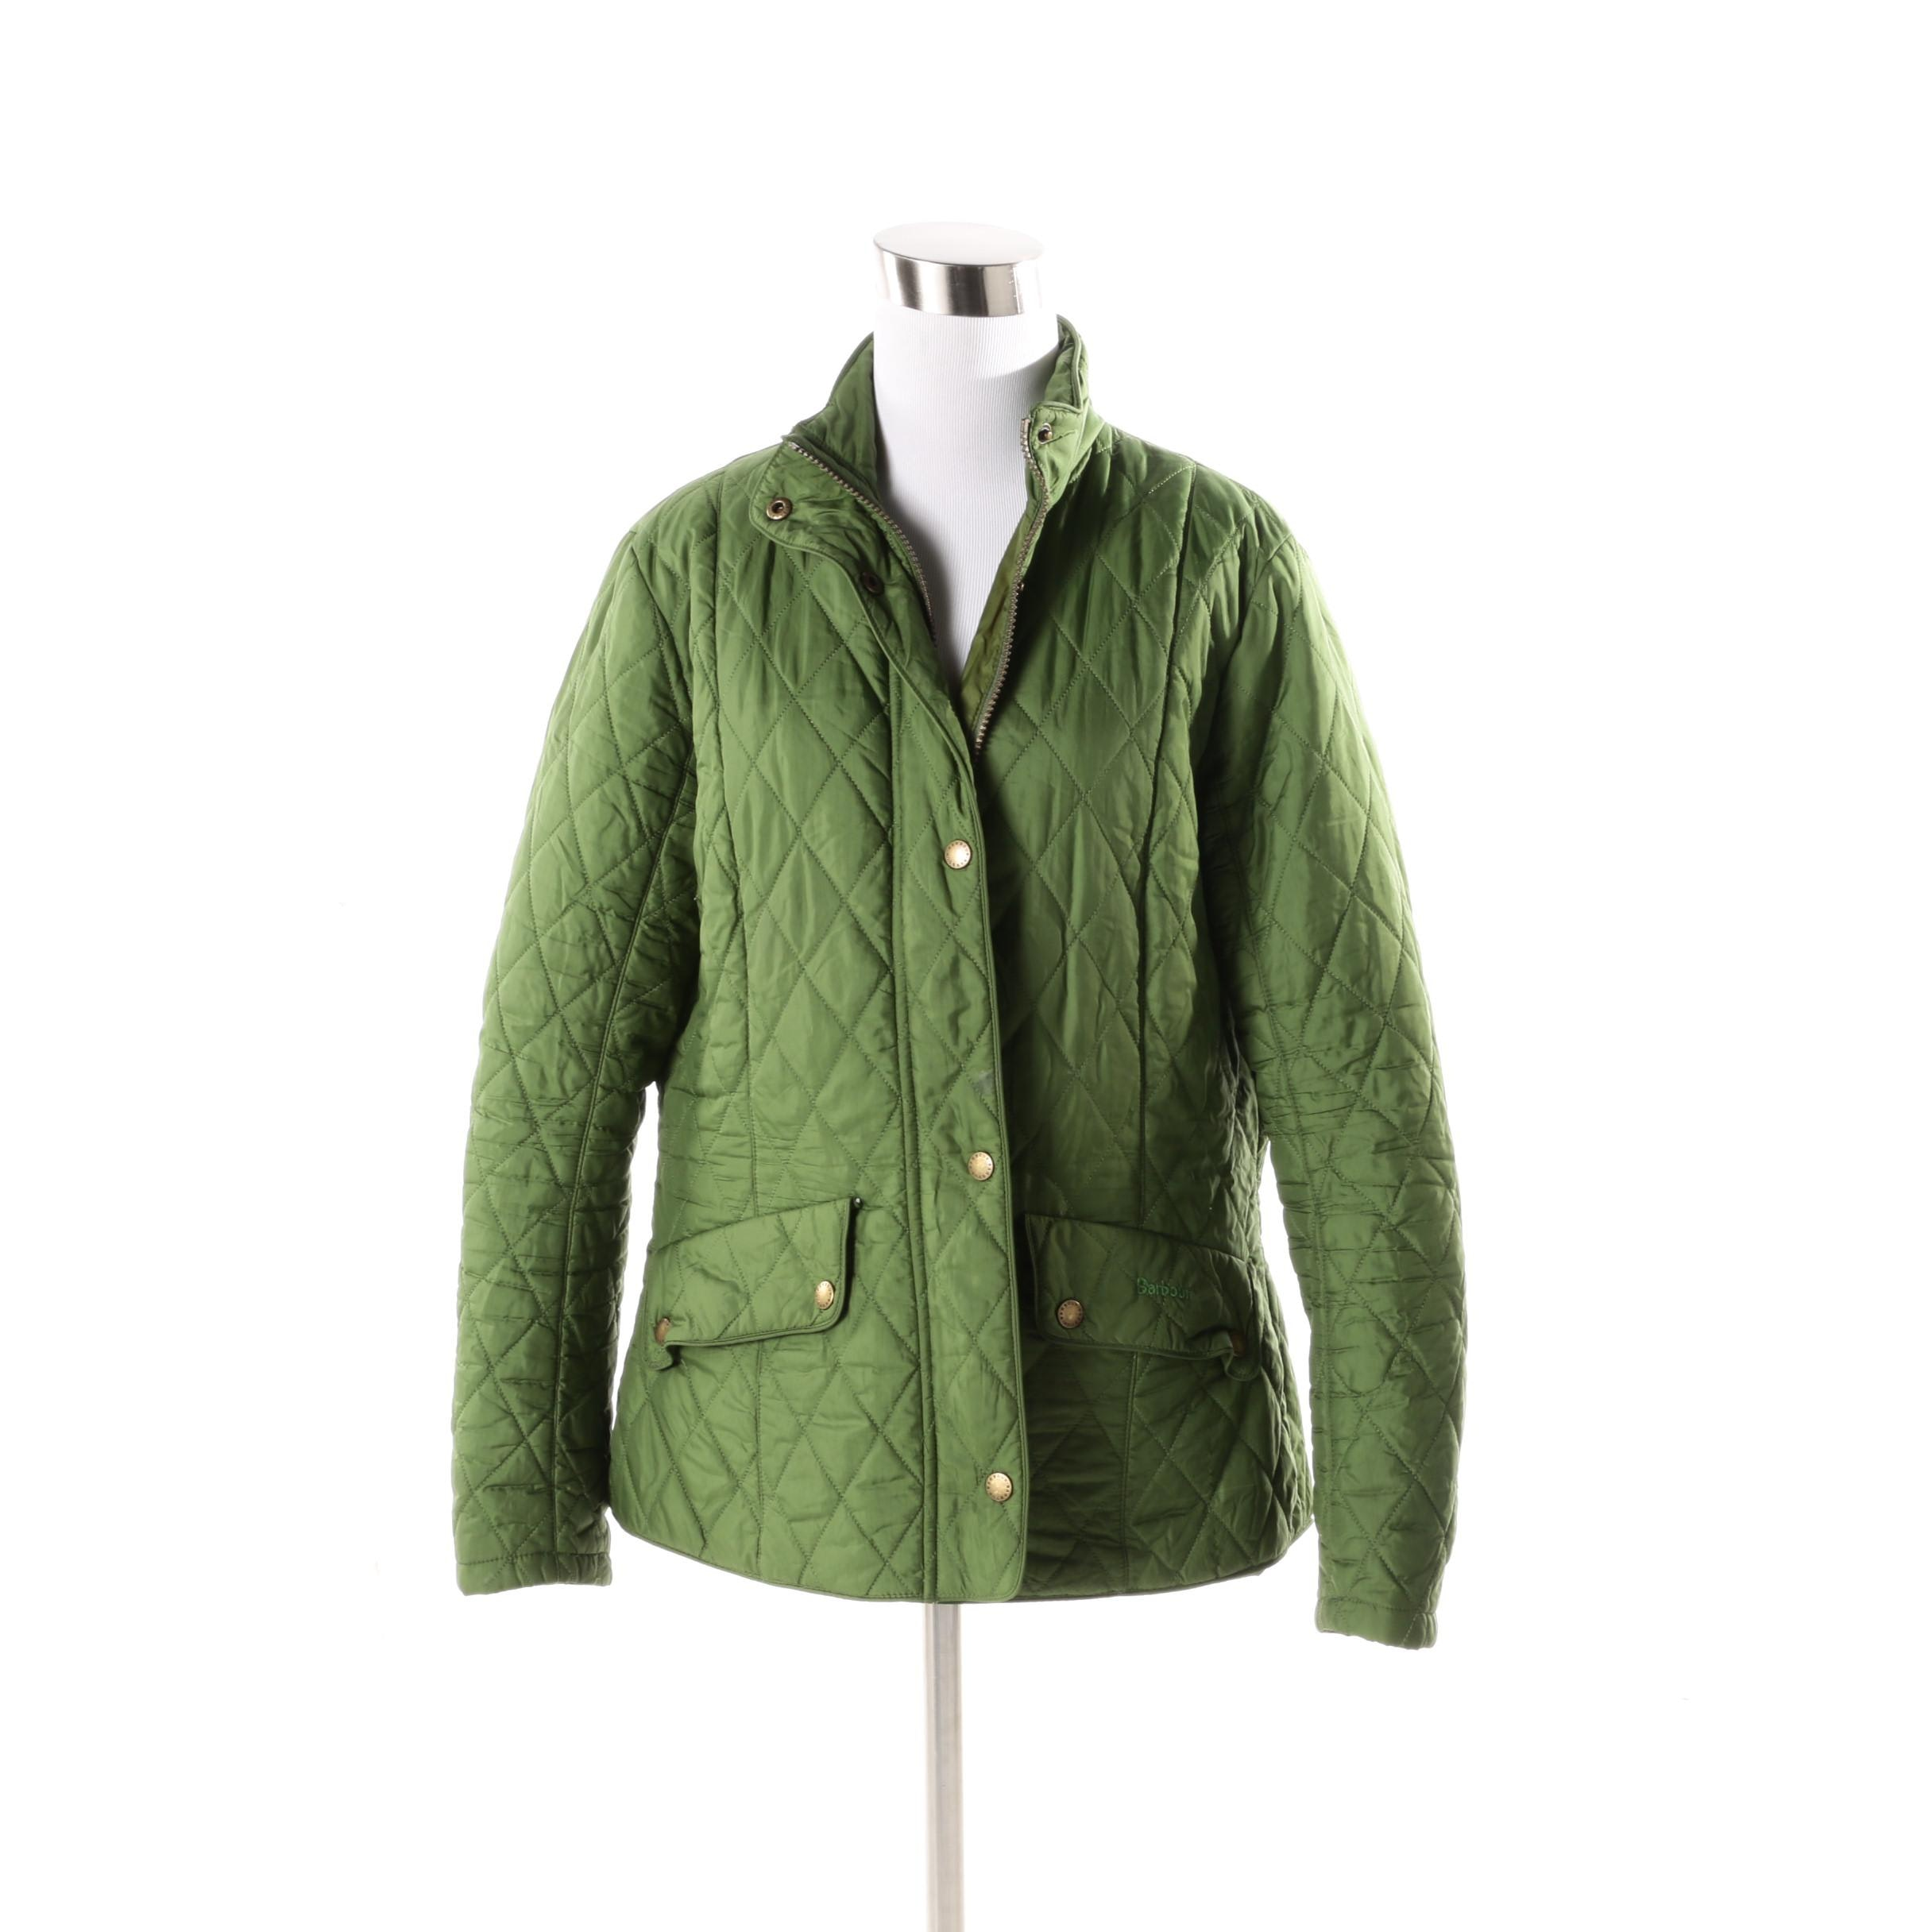 Women's Barbour Green Quilted Jacket